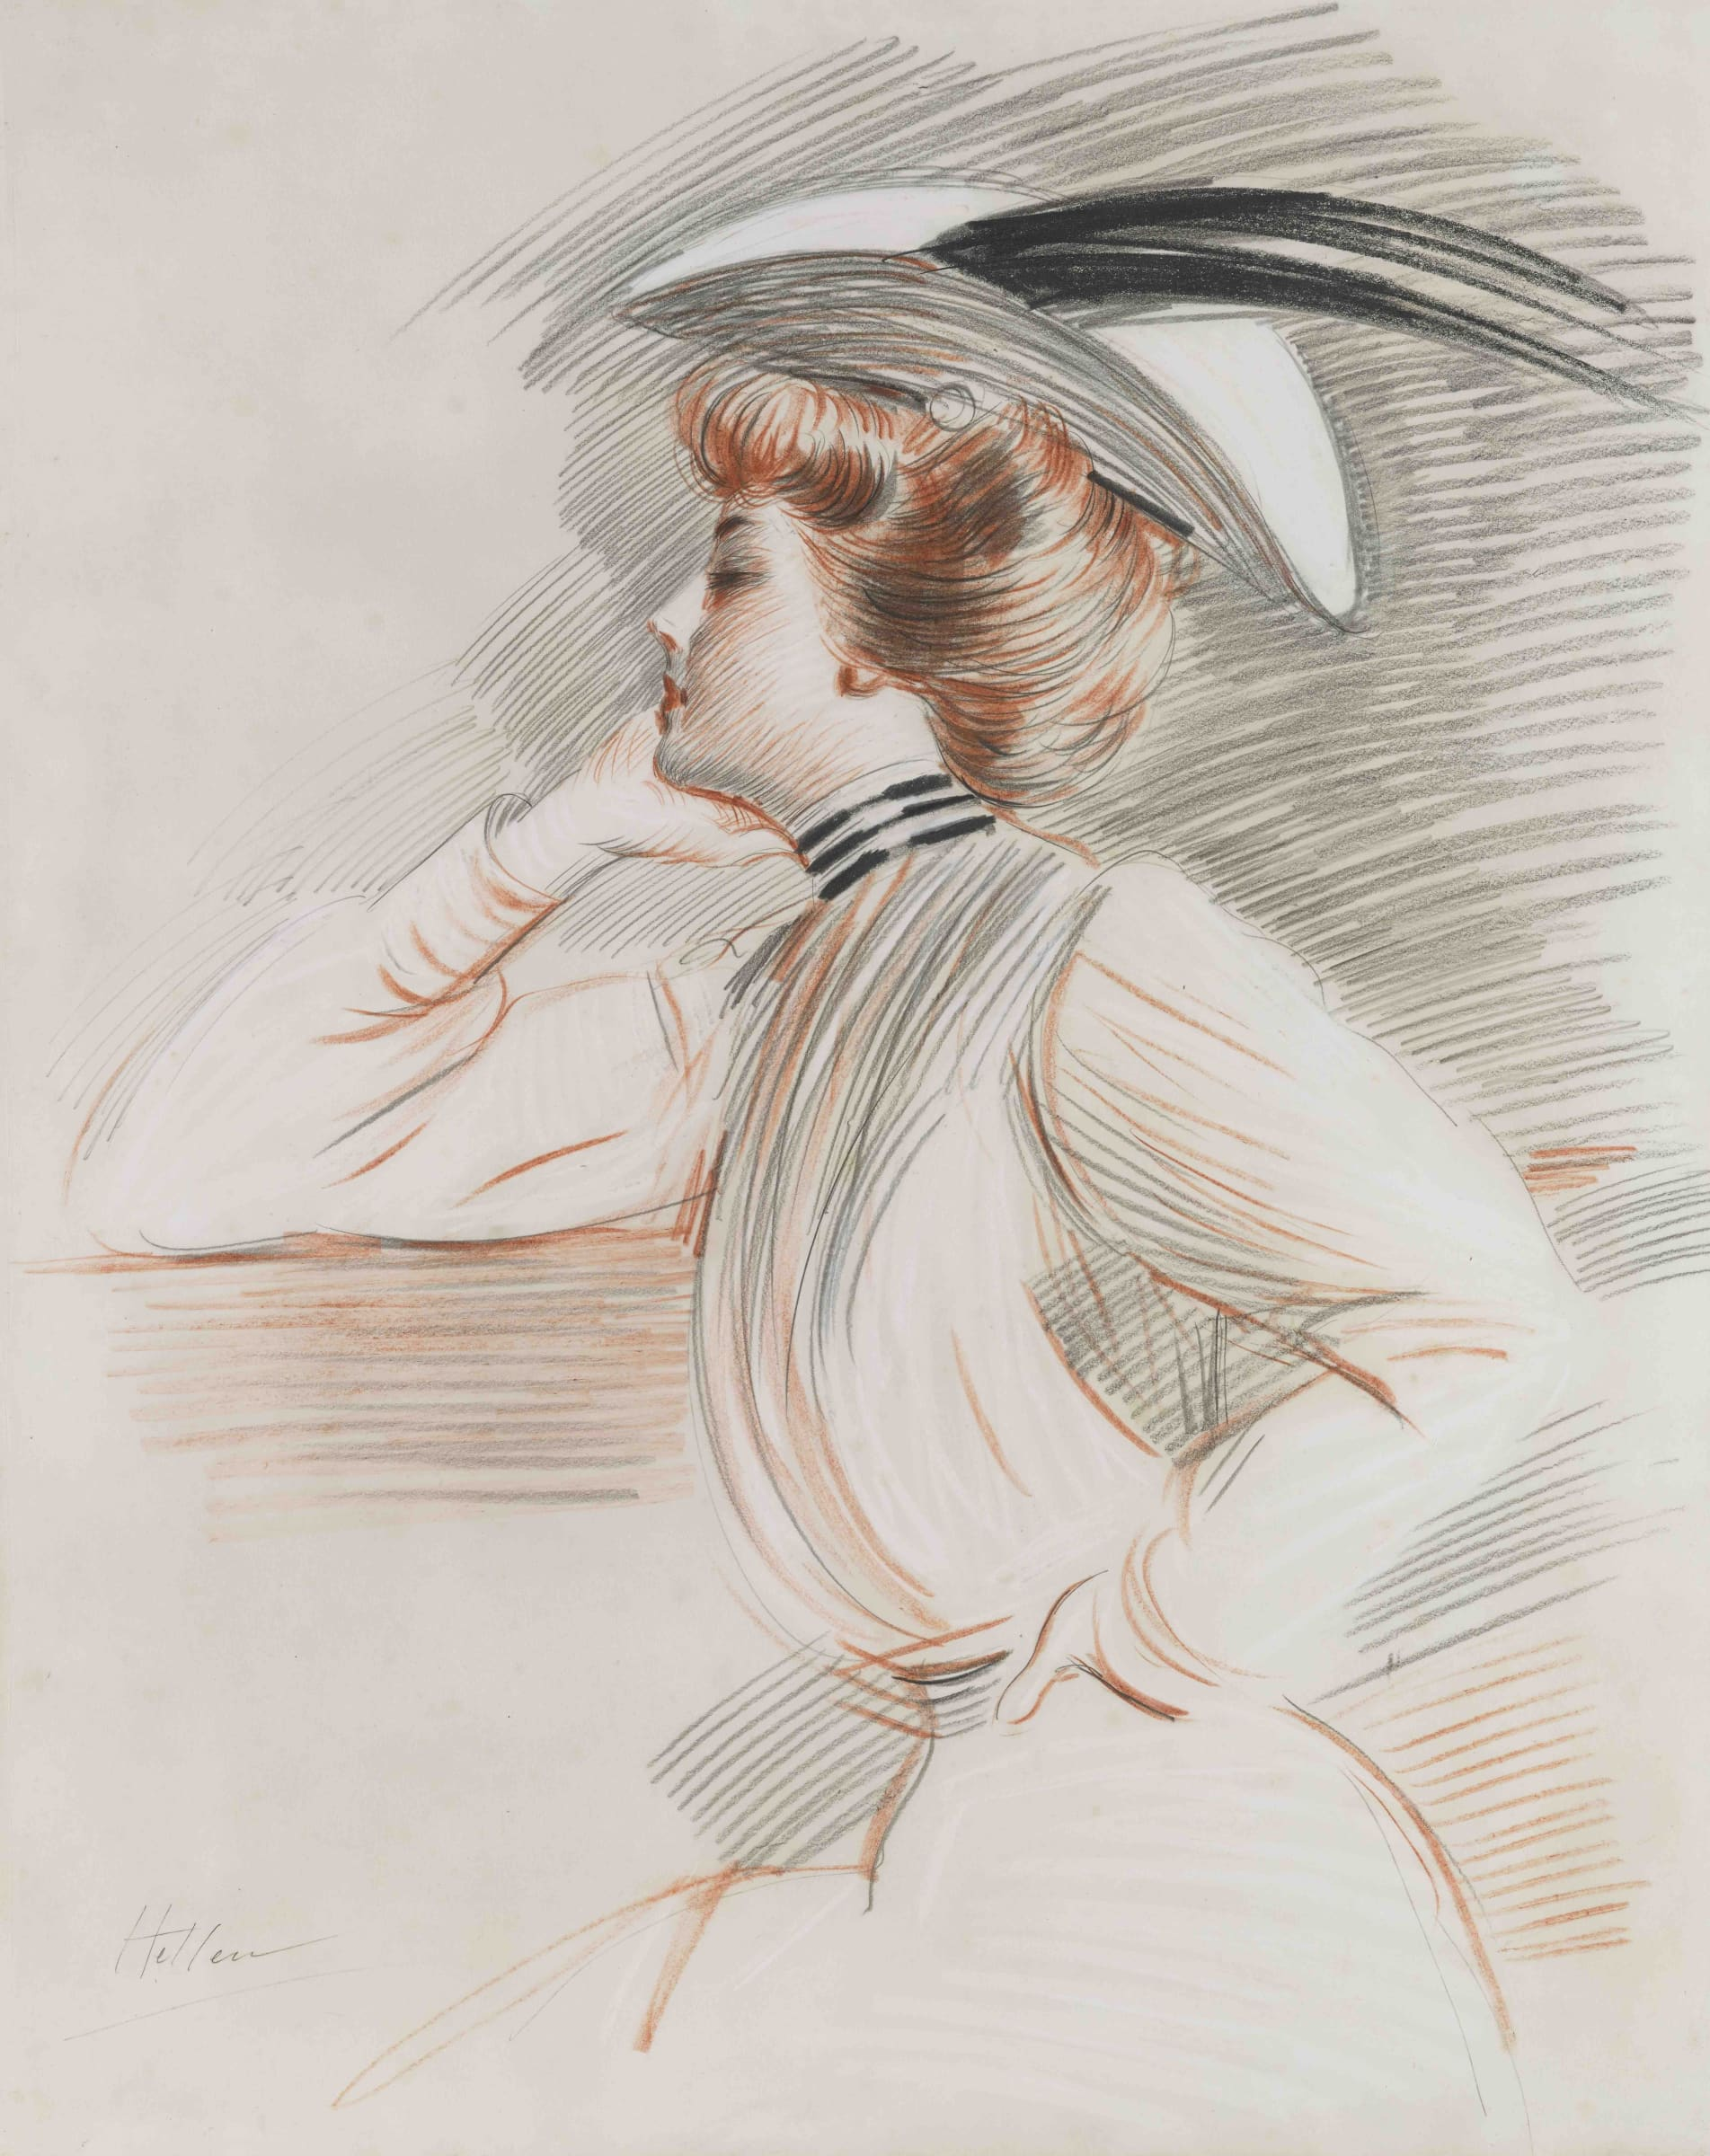 <span class=&#34;link fancybox-details-link&#34;><a href=&#34;/artists/50-paul-csar-helleu/works/9394-paul-c-sar-helleu-portrait-d-emily-stuart-taylor/&#34;>View Detail Page</a></span><div class=&#34;artist&#34;><span class=&#34;artist&#34;><strong>Paul César Helleu</strong></span></div><div class=&#34;title&#34;><em>Portrait d'Emily Stuart Taylor</em></div><div class=&#34;signed_and_dated&#34;>Signed lower left</div><div class=&#34;medium&#34;>Red, black and white chalk on paper</div><div class=&#34;dimensions&#34;>74.8 x 59.8 cm<br /> 29 7/16 x 23 9/16 inches</div>